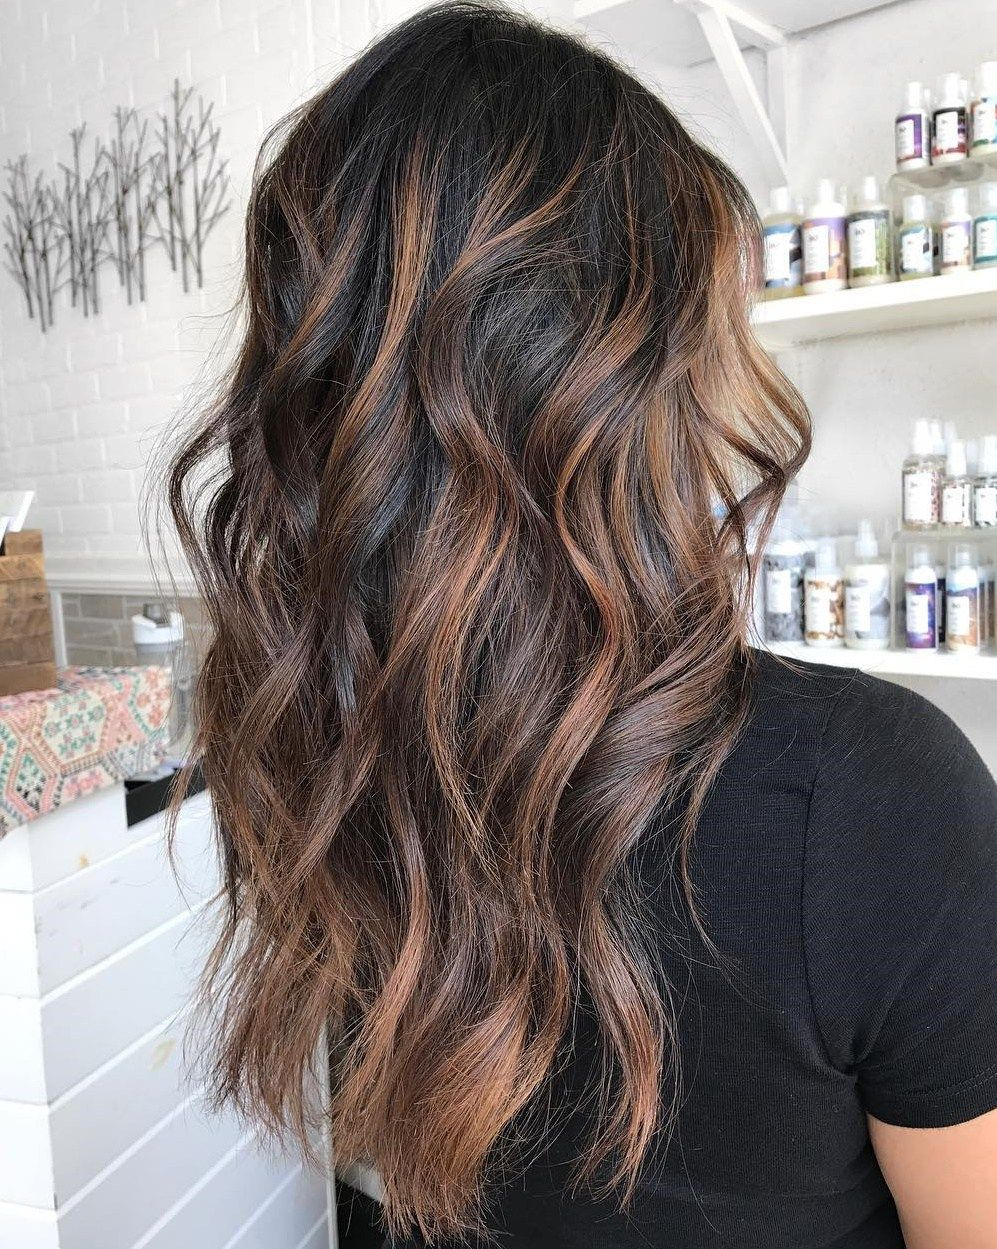 60 Chocolate Brown Hair Color Ideas For Brunettes Brown Hair With Highlights Hair Highlights Cool Brown Hair